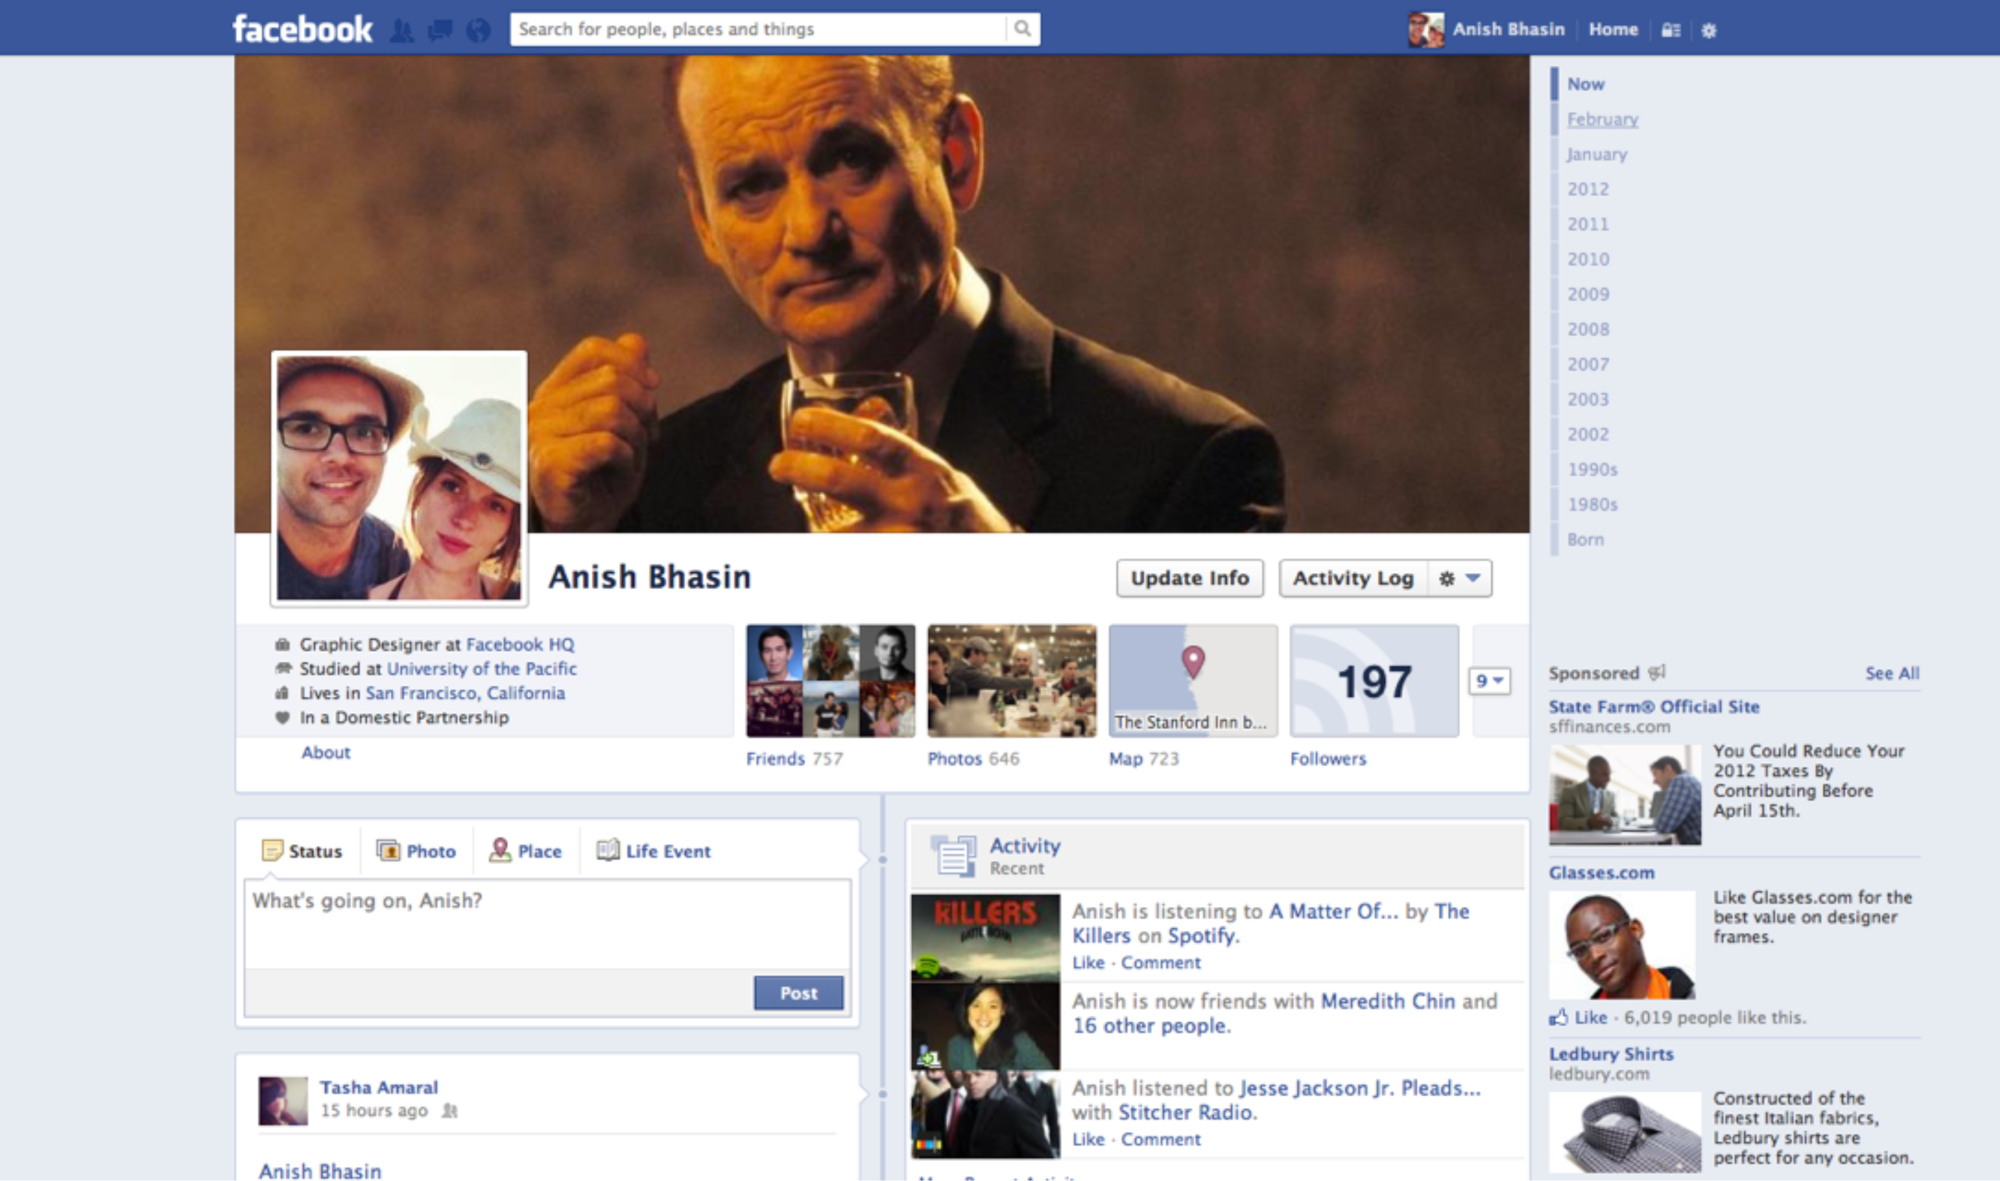 Facebook Profile Page, 2012. The timeline allows you (or your parents) to trace your life from birth to death.